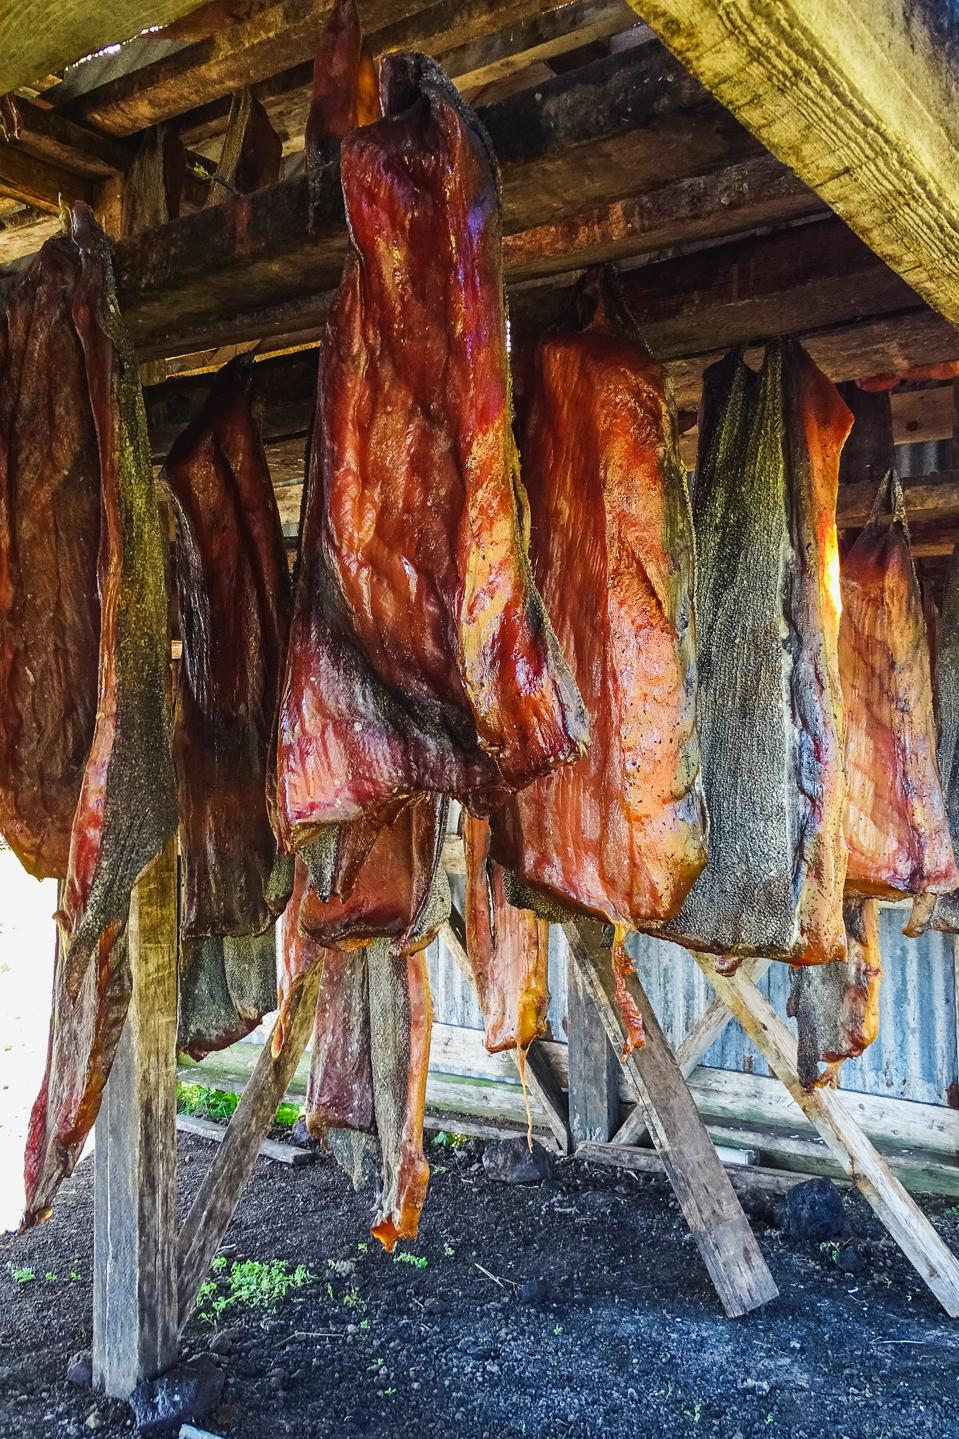 Specialty of iceland called hakarl fermented shark, drying in an open warehouse